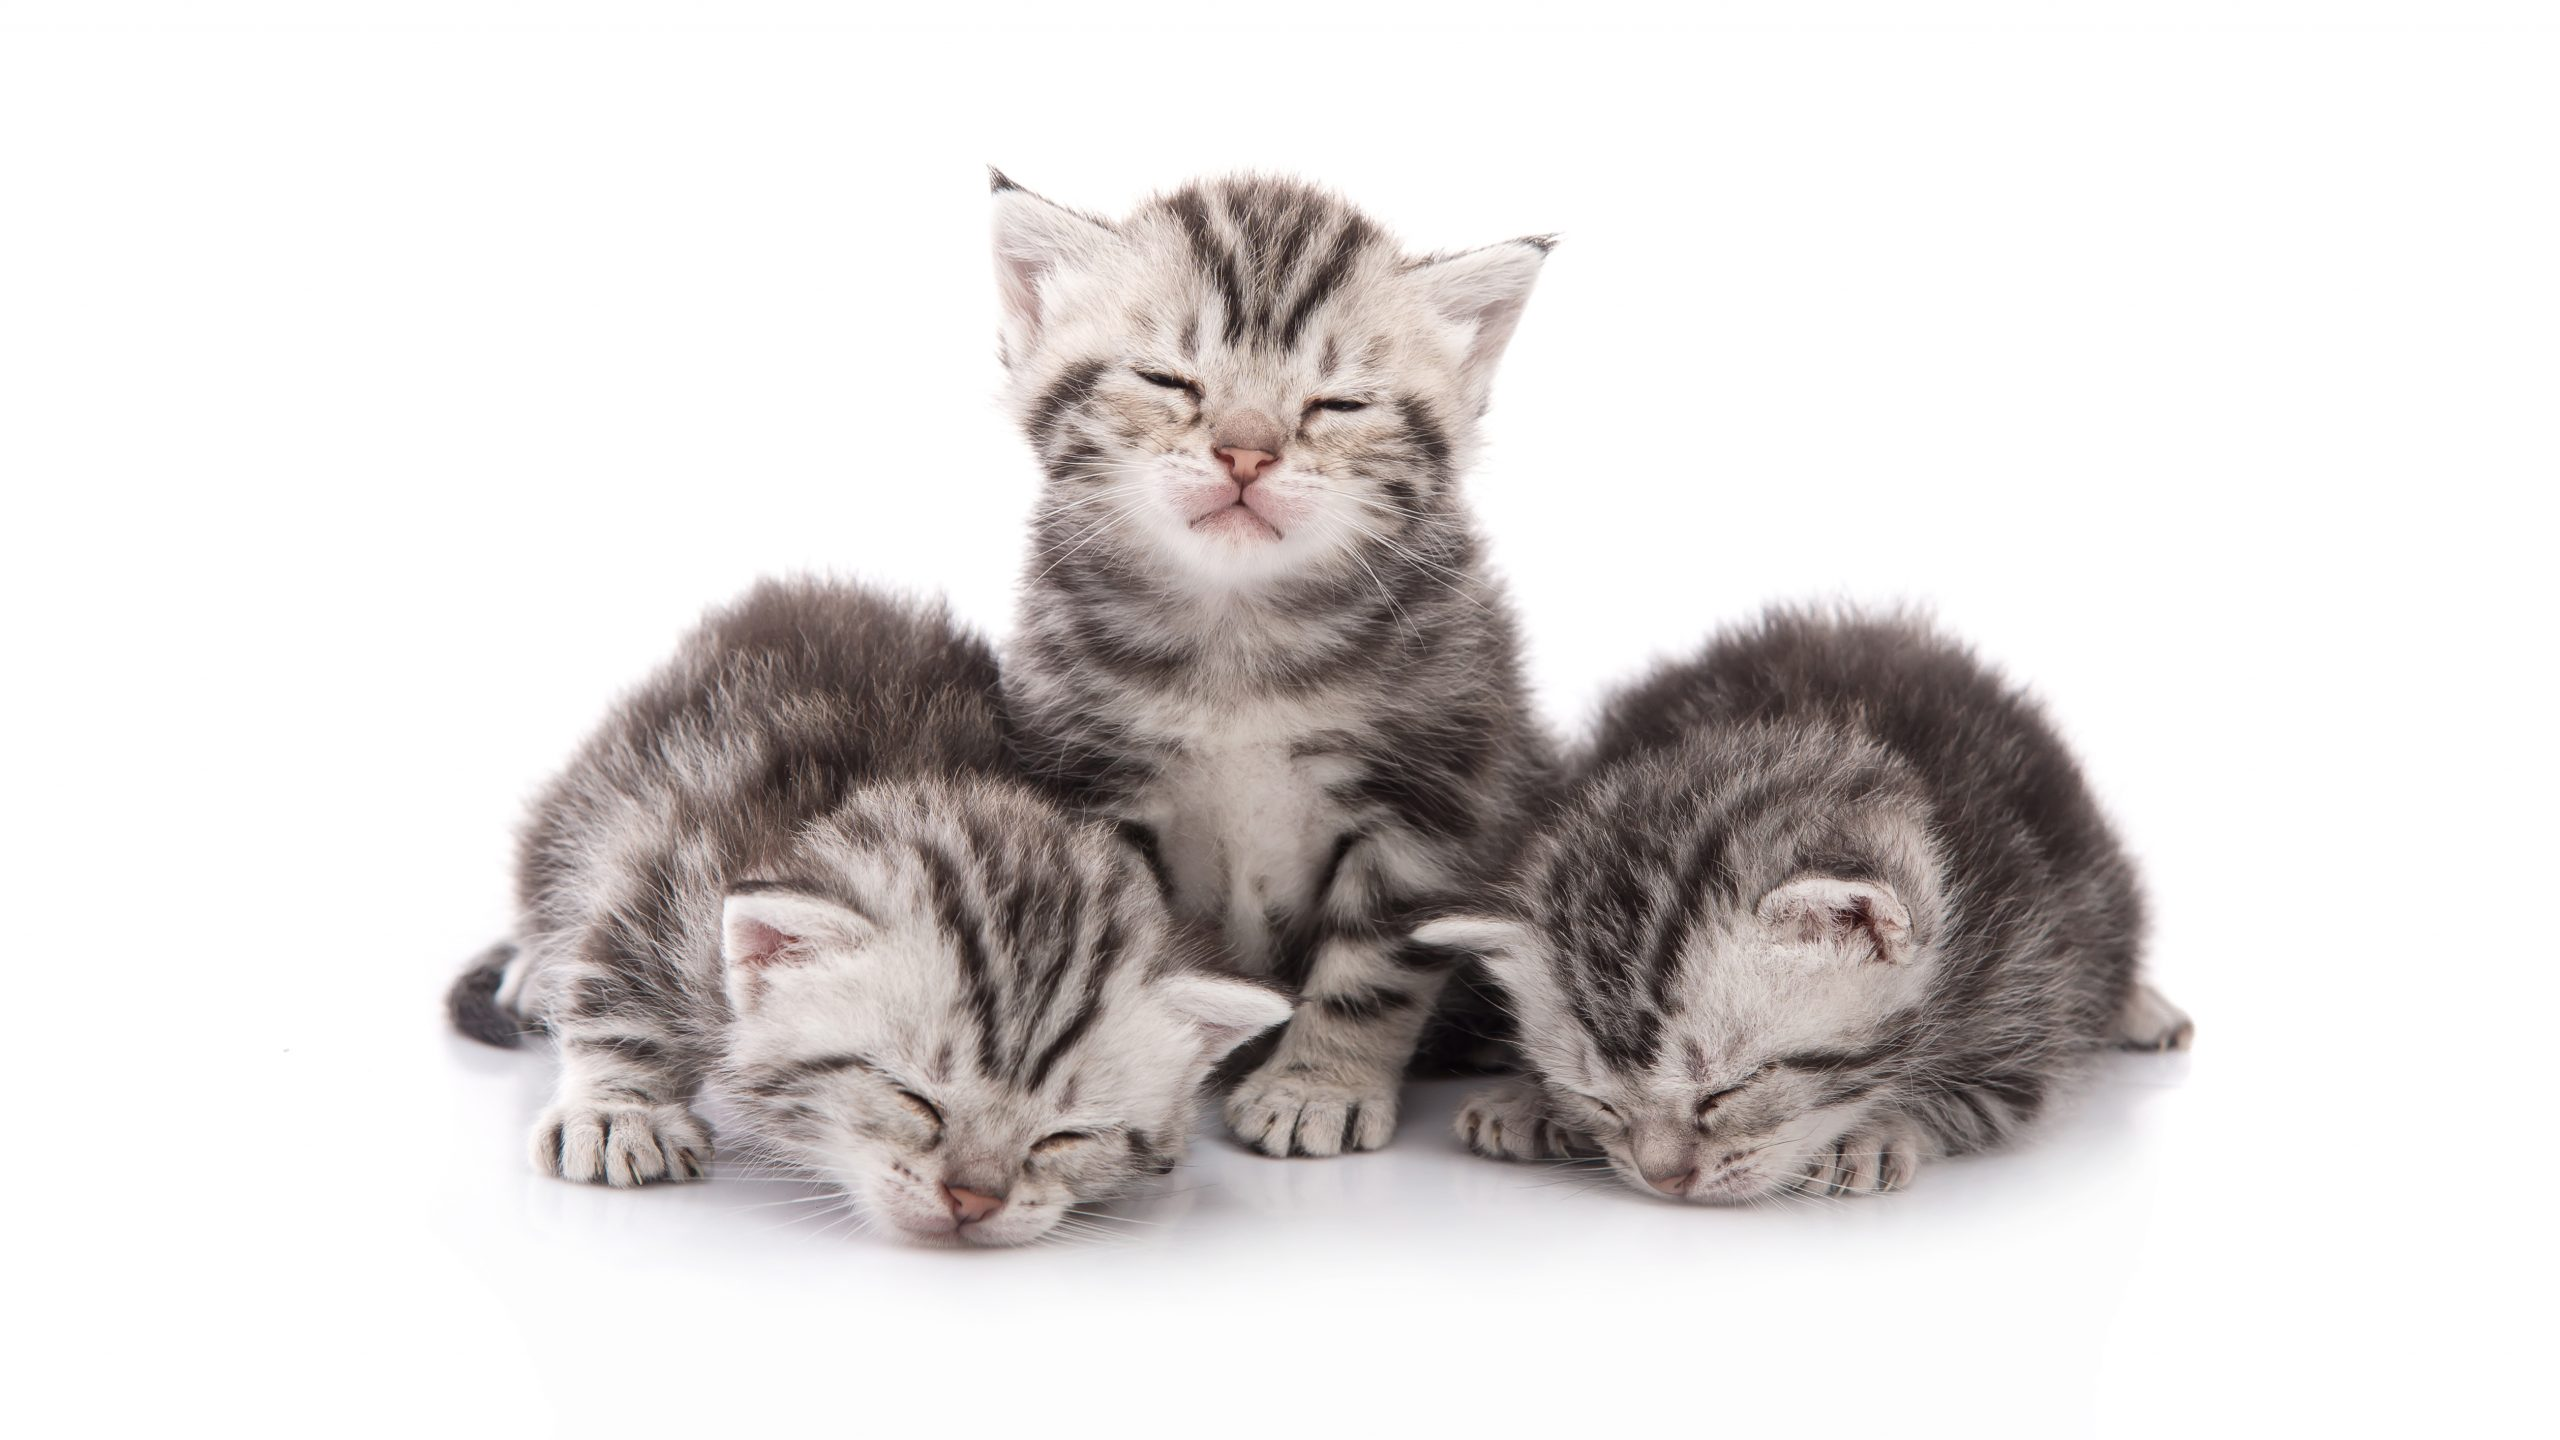 Found Cats And Kittens What Should I Do If I Find A Kitten S Younger Than 8 Weeks With Or Without A Mother In A Private Quiet Location Ten Lives